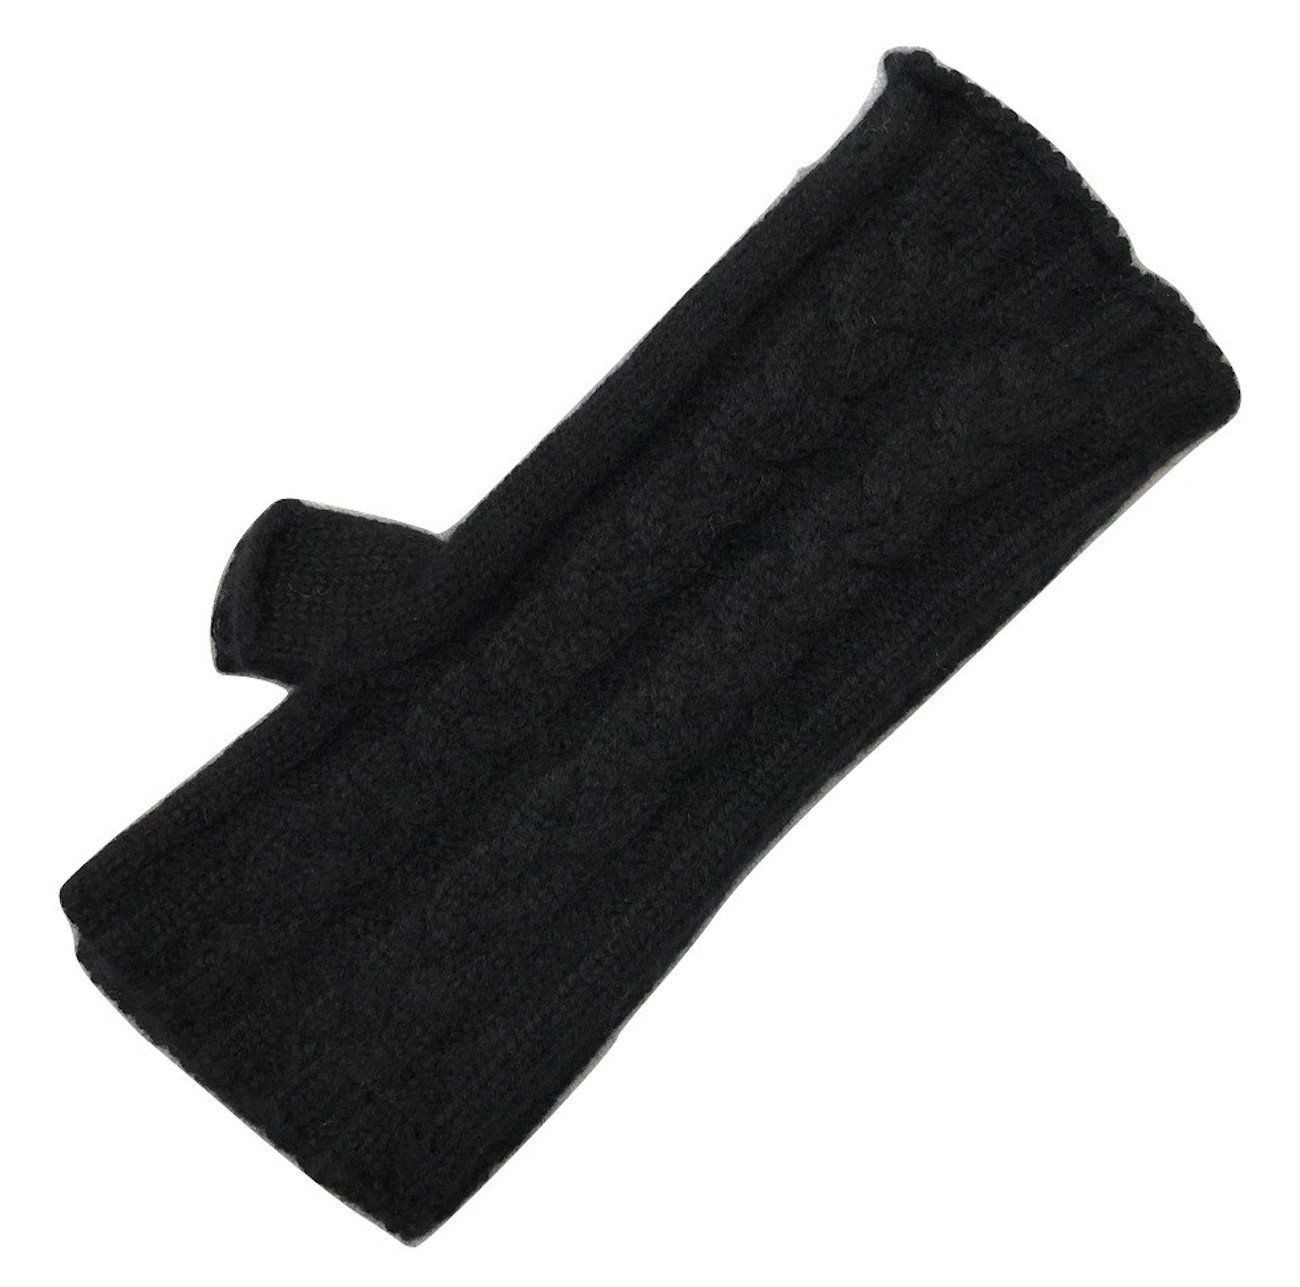 The Scarf Company Black 3 Ply Cable Knit Cashmere Ladies Fingerless Mitts/Gloves